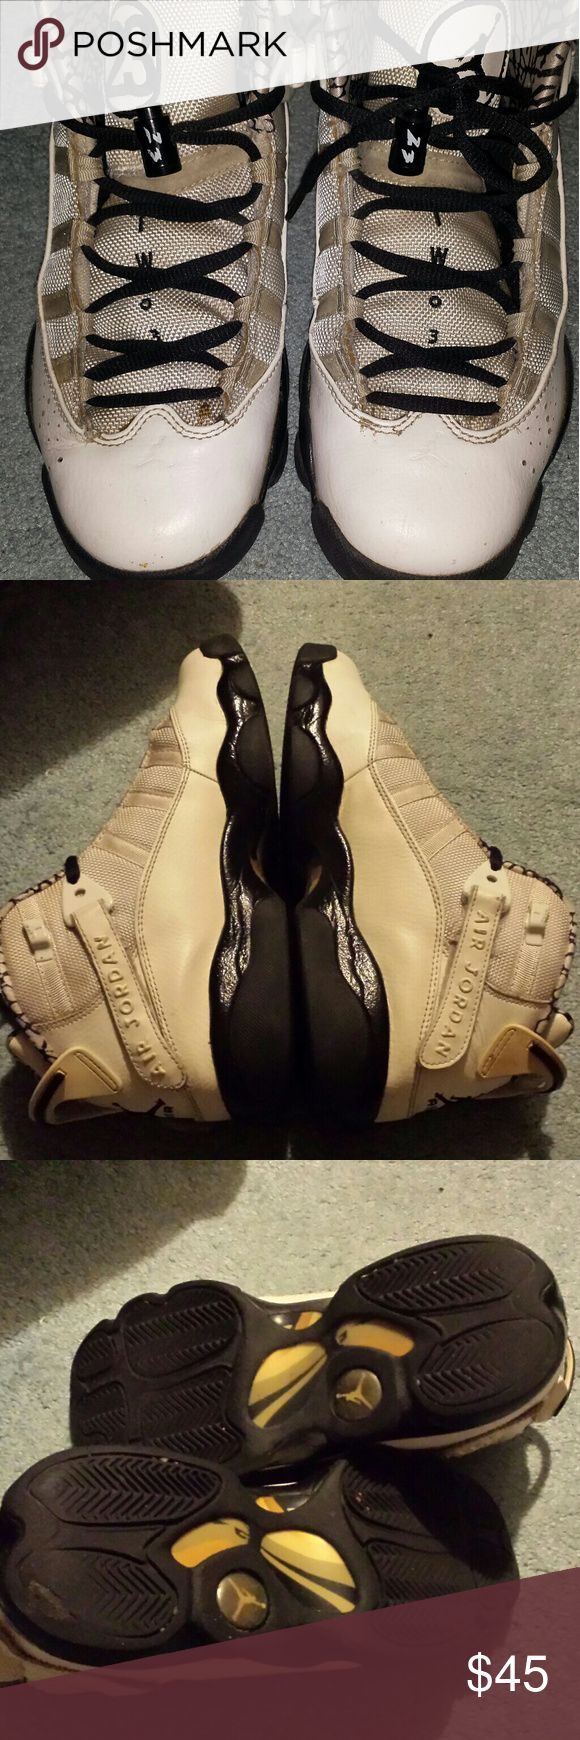 RARE JORDAN 6 RINGS SNEAKERS SIZE 6Y Still in good shape. Comes with string locks Nike Shoes Sneakers